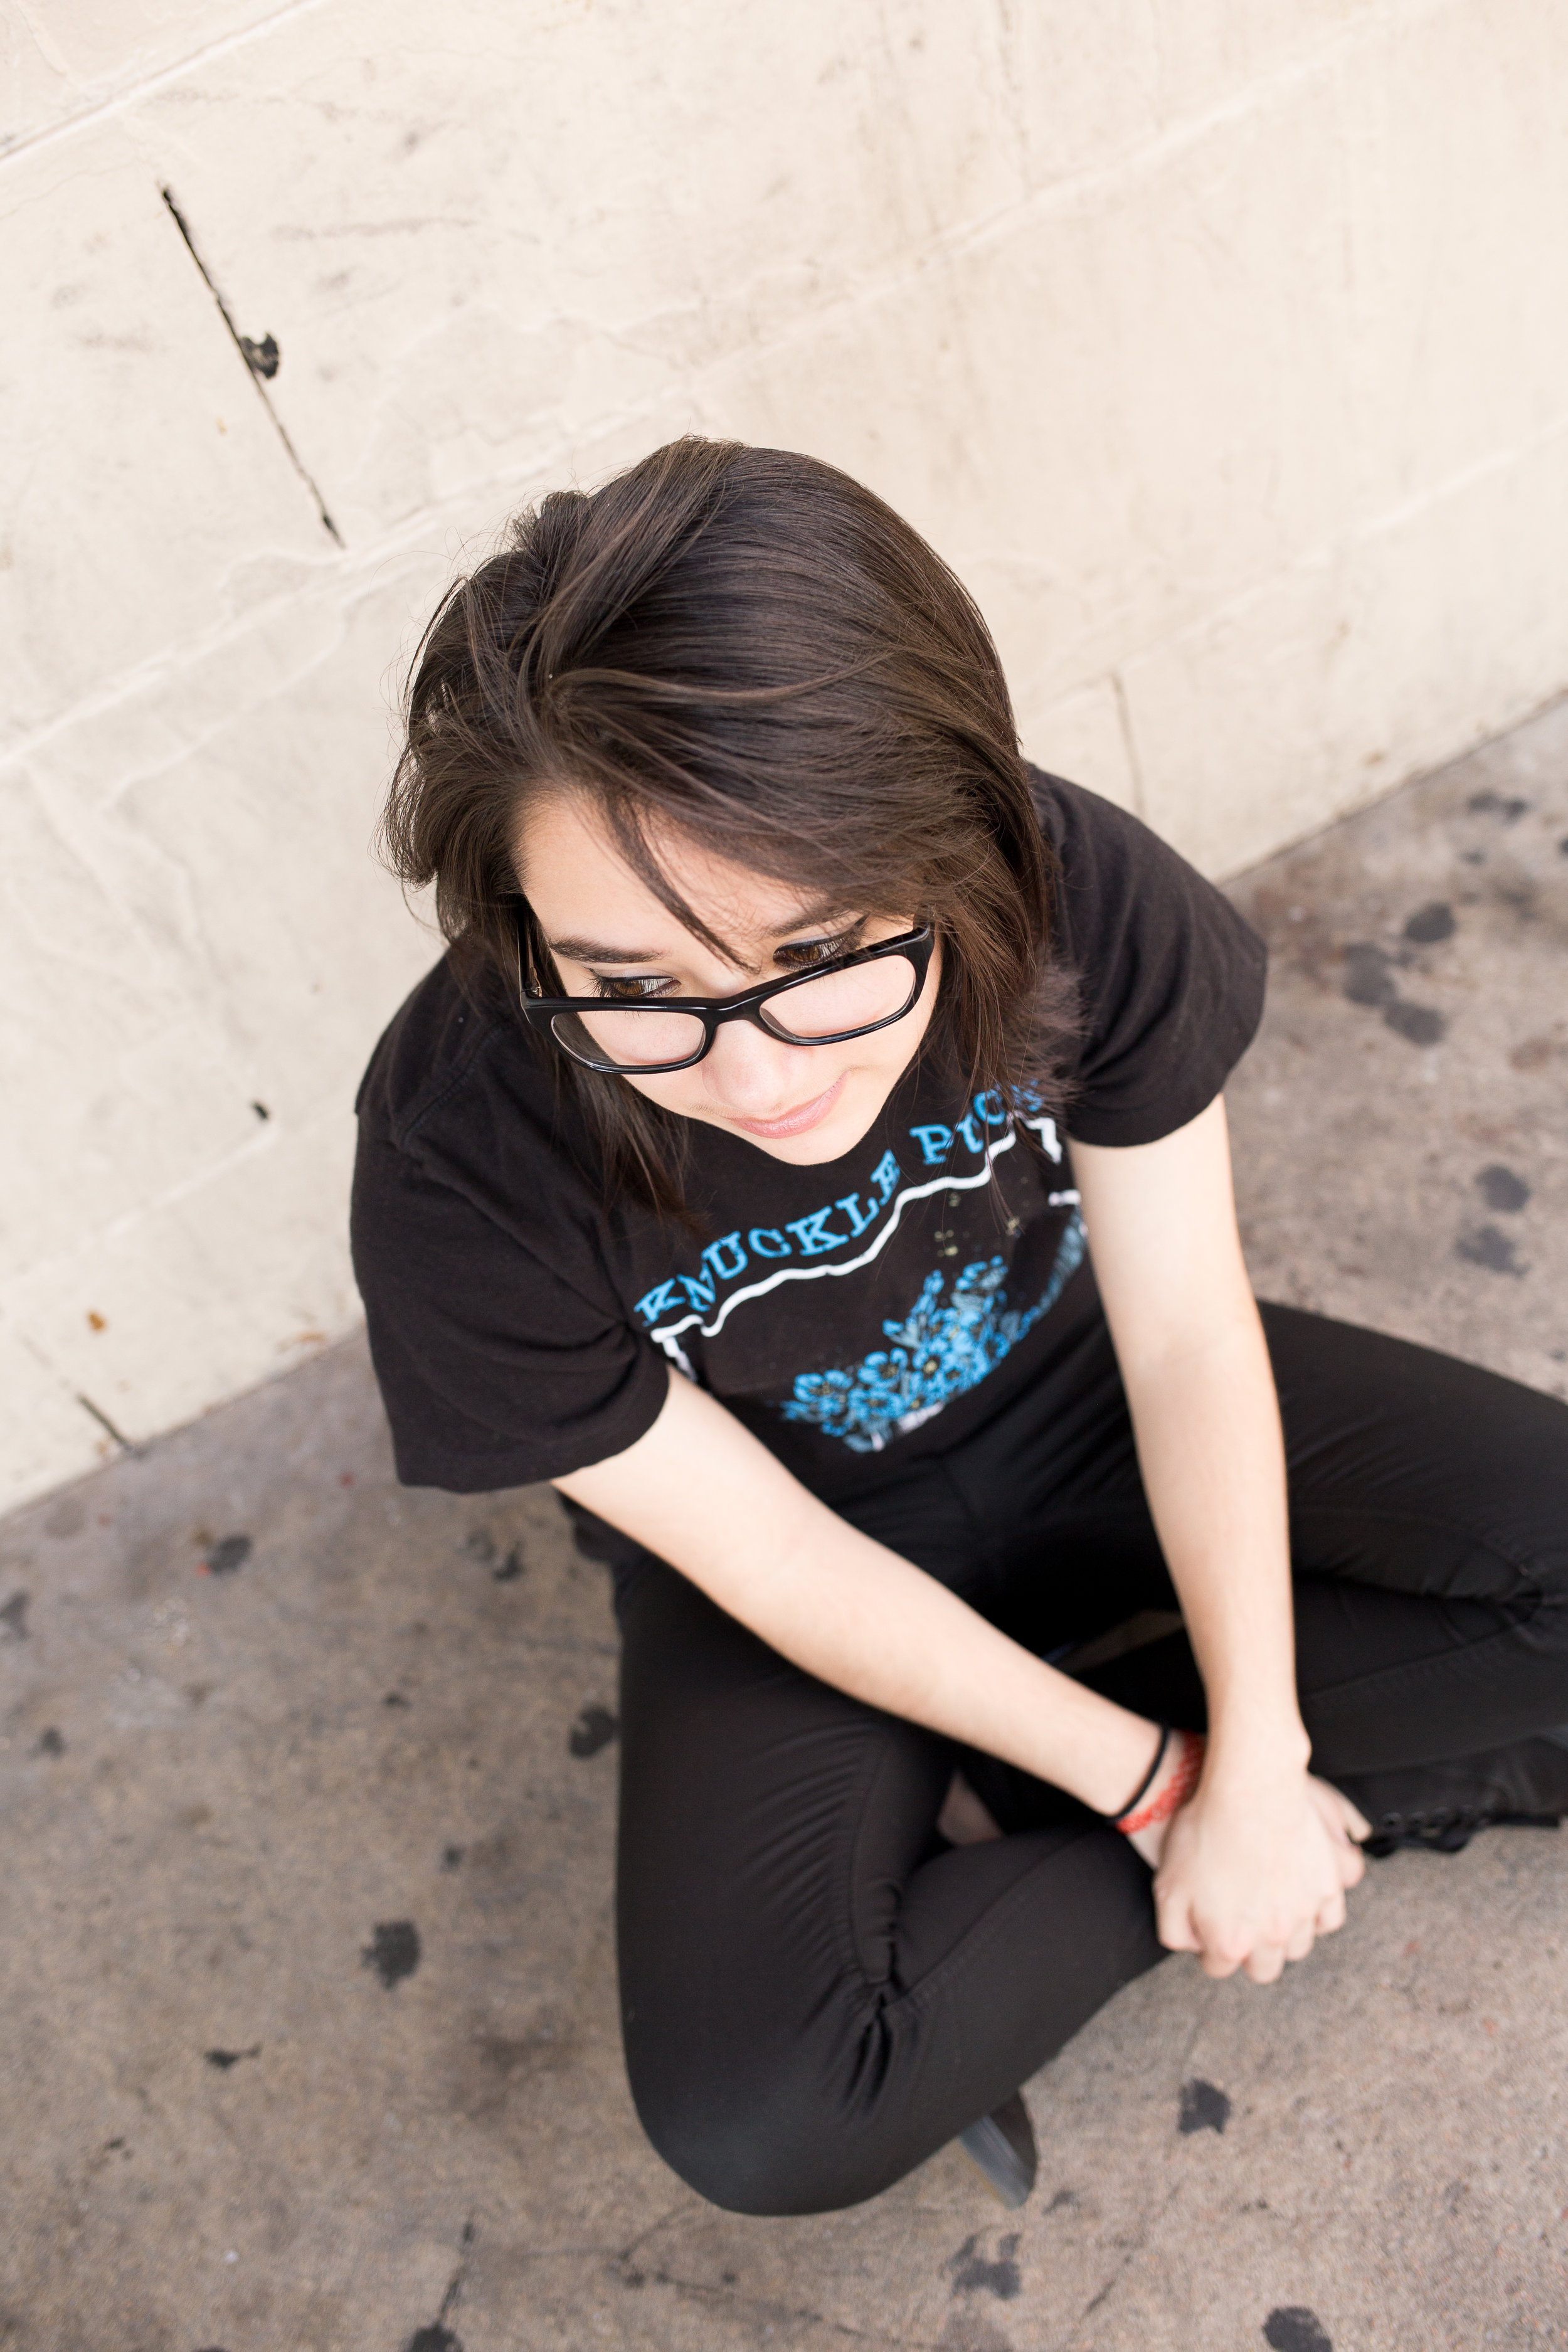 Colorado Springs Senior Photography | Colorado Springs Senior Photographer | Denver Senior Photographer | Girl with glasses sitting on ground by music venue | Stacy Carosa Photography